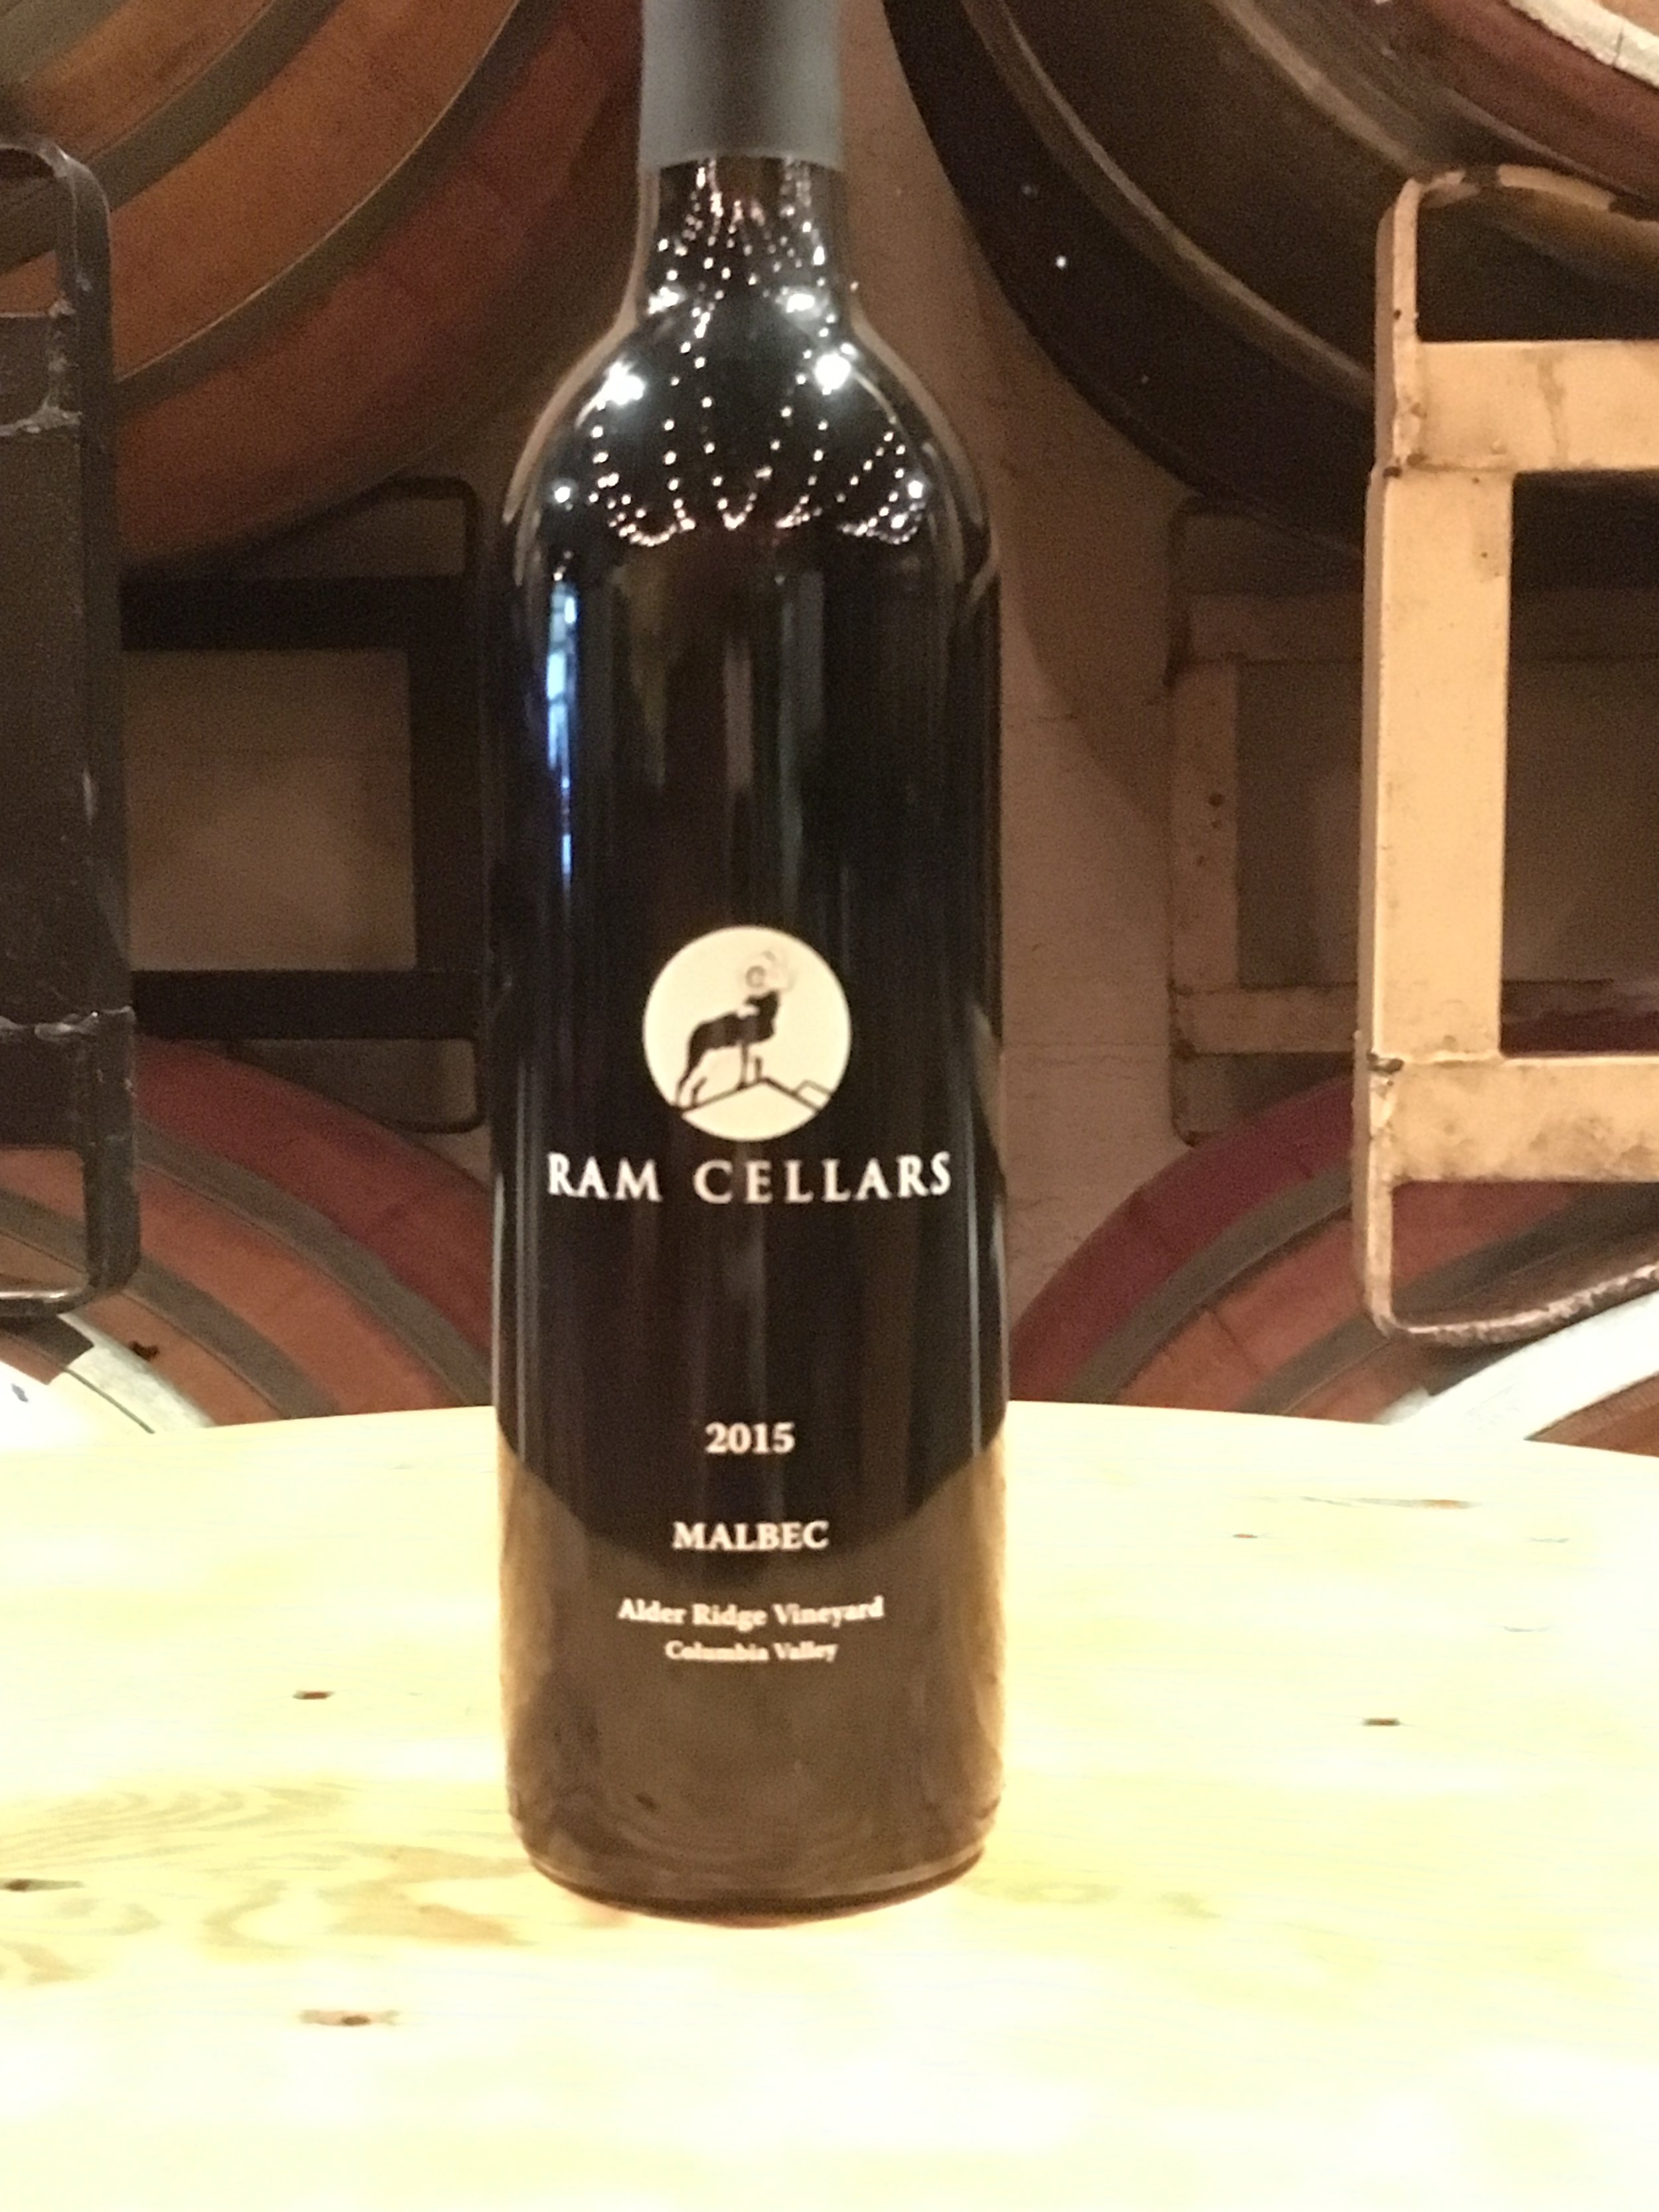 2015 MALBEC $25 (SOLD OUT!)Bold yet supple,this wine exhibits aromas of black cherry, mission fig, and leather. Rhubarb pie, strawberry hard candy, and sour cherry flavors abound, balanced by a hint of brown sugar and well structured tannins. This wine has some serious aging potential and pairs well with steak, lamb, charcuterie, dark chocolate, and family and friends! - Alder Ridge Vineyard, Washington State, 70 cases produced